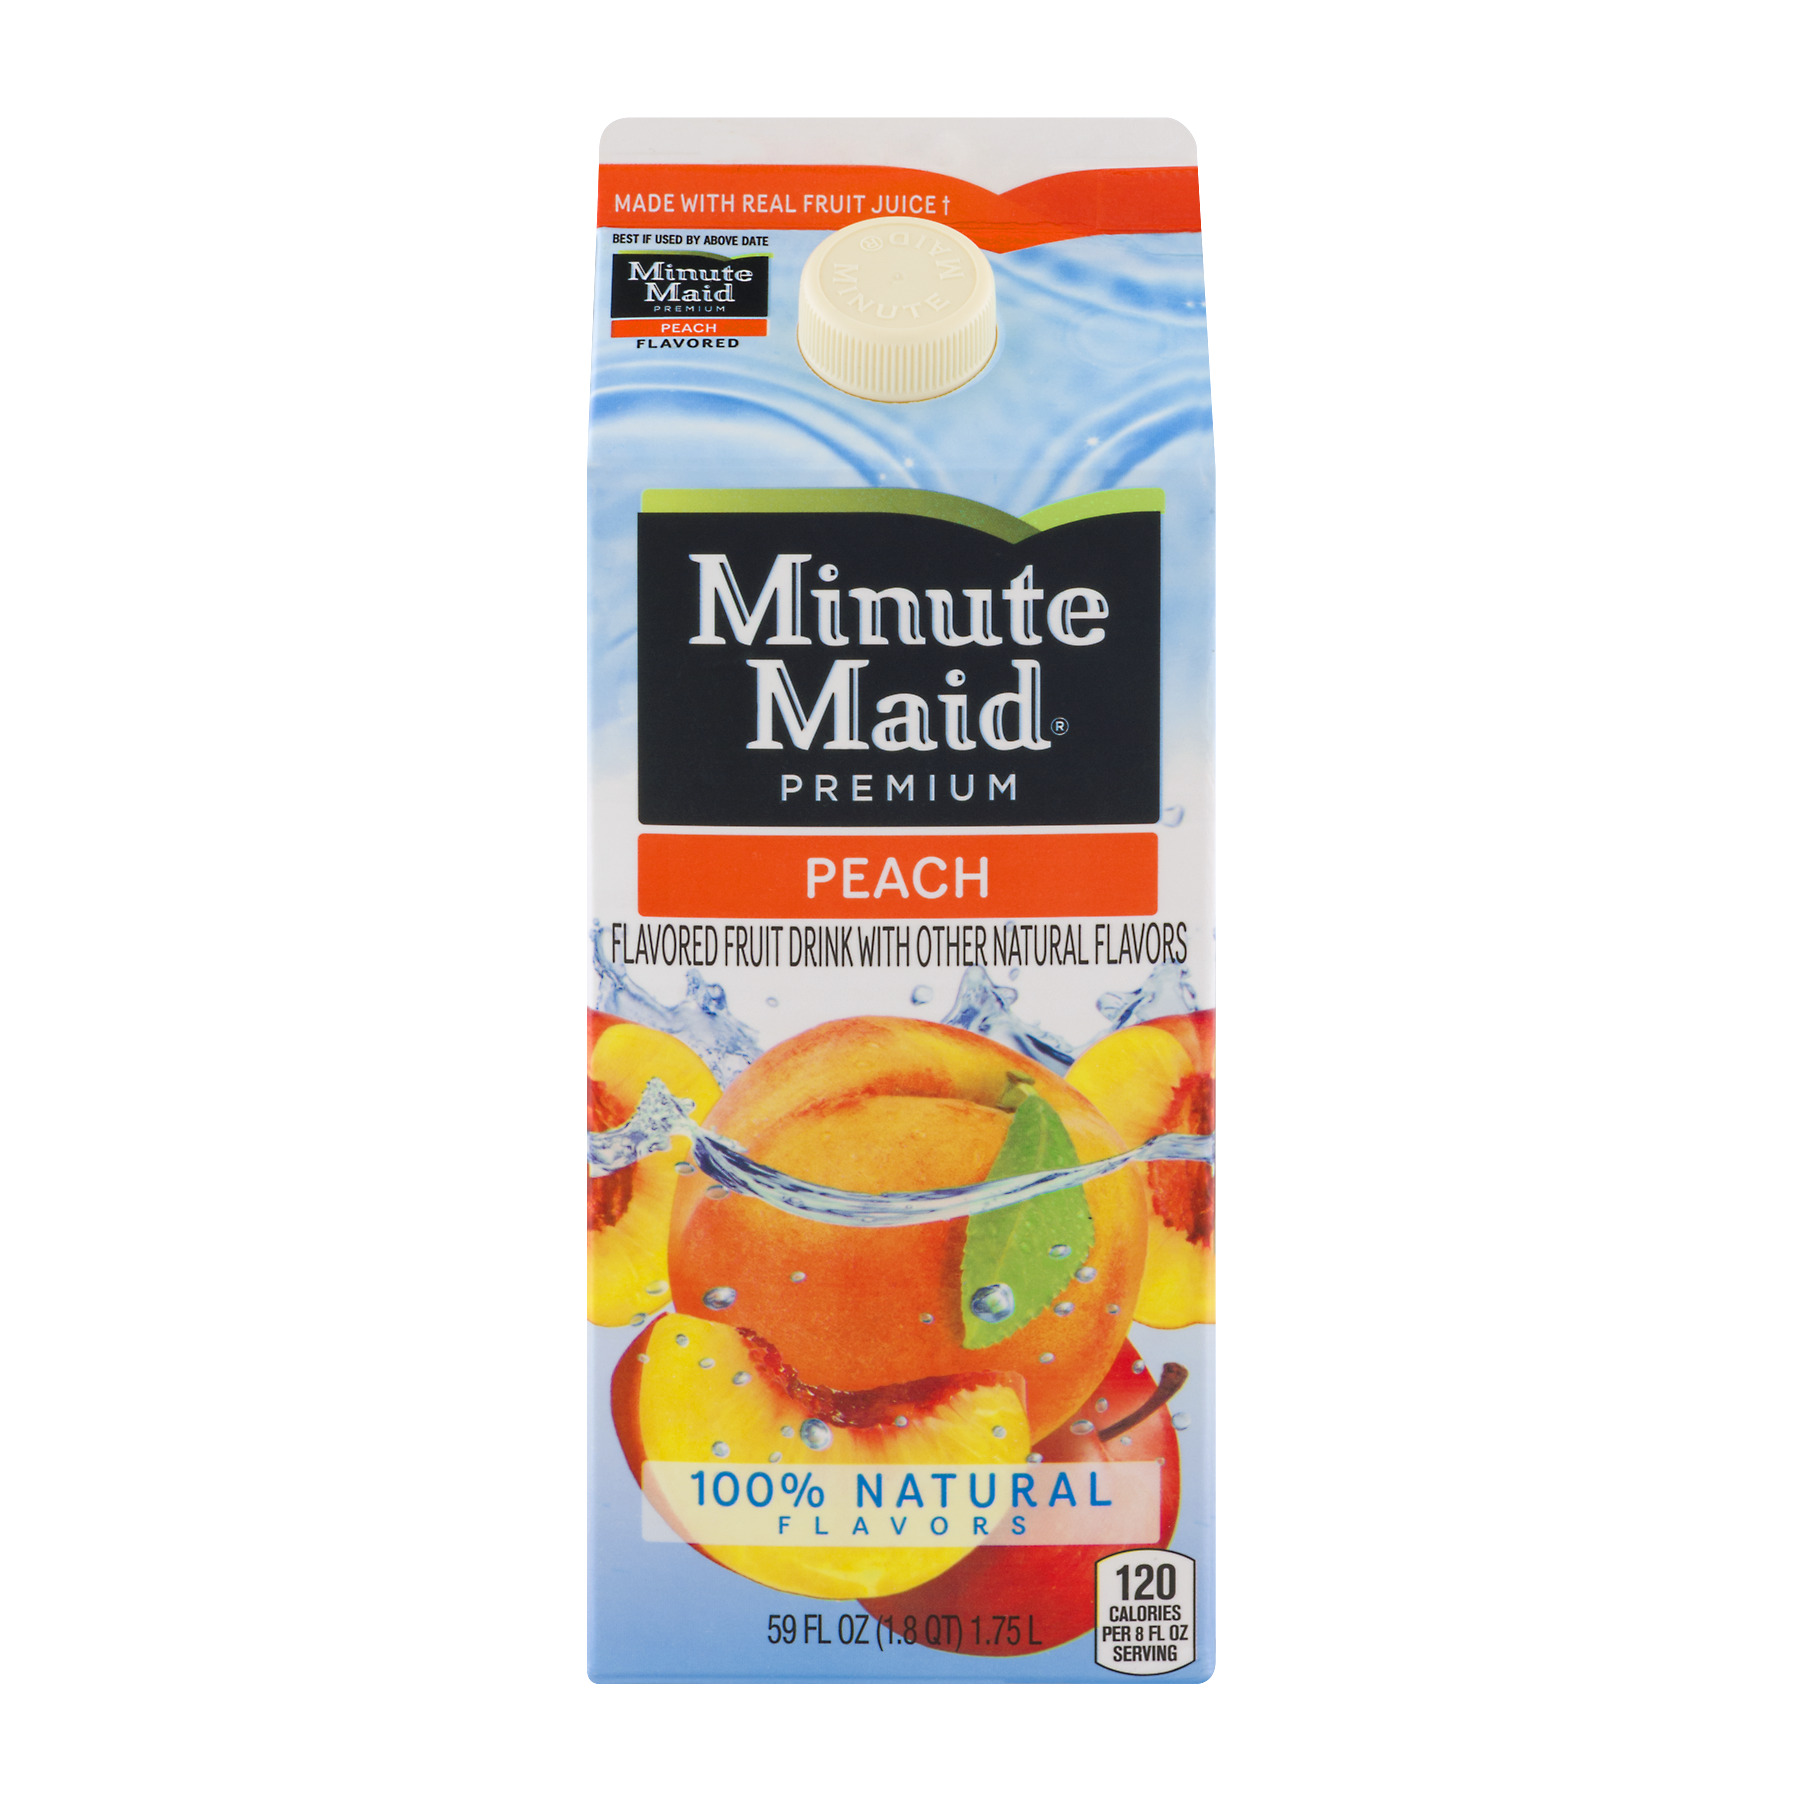 Minute Maid Premium Fruit Drink Peach, 59.0 FL OZ